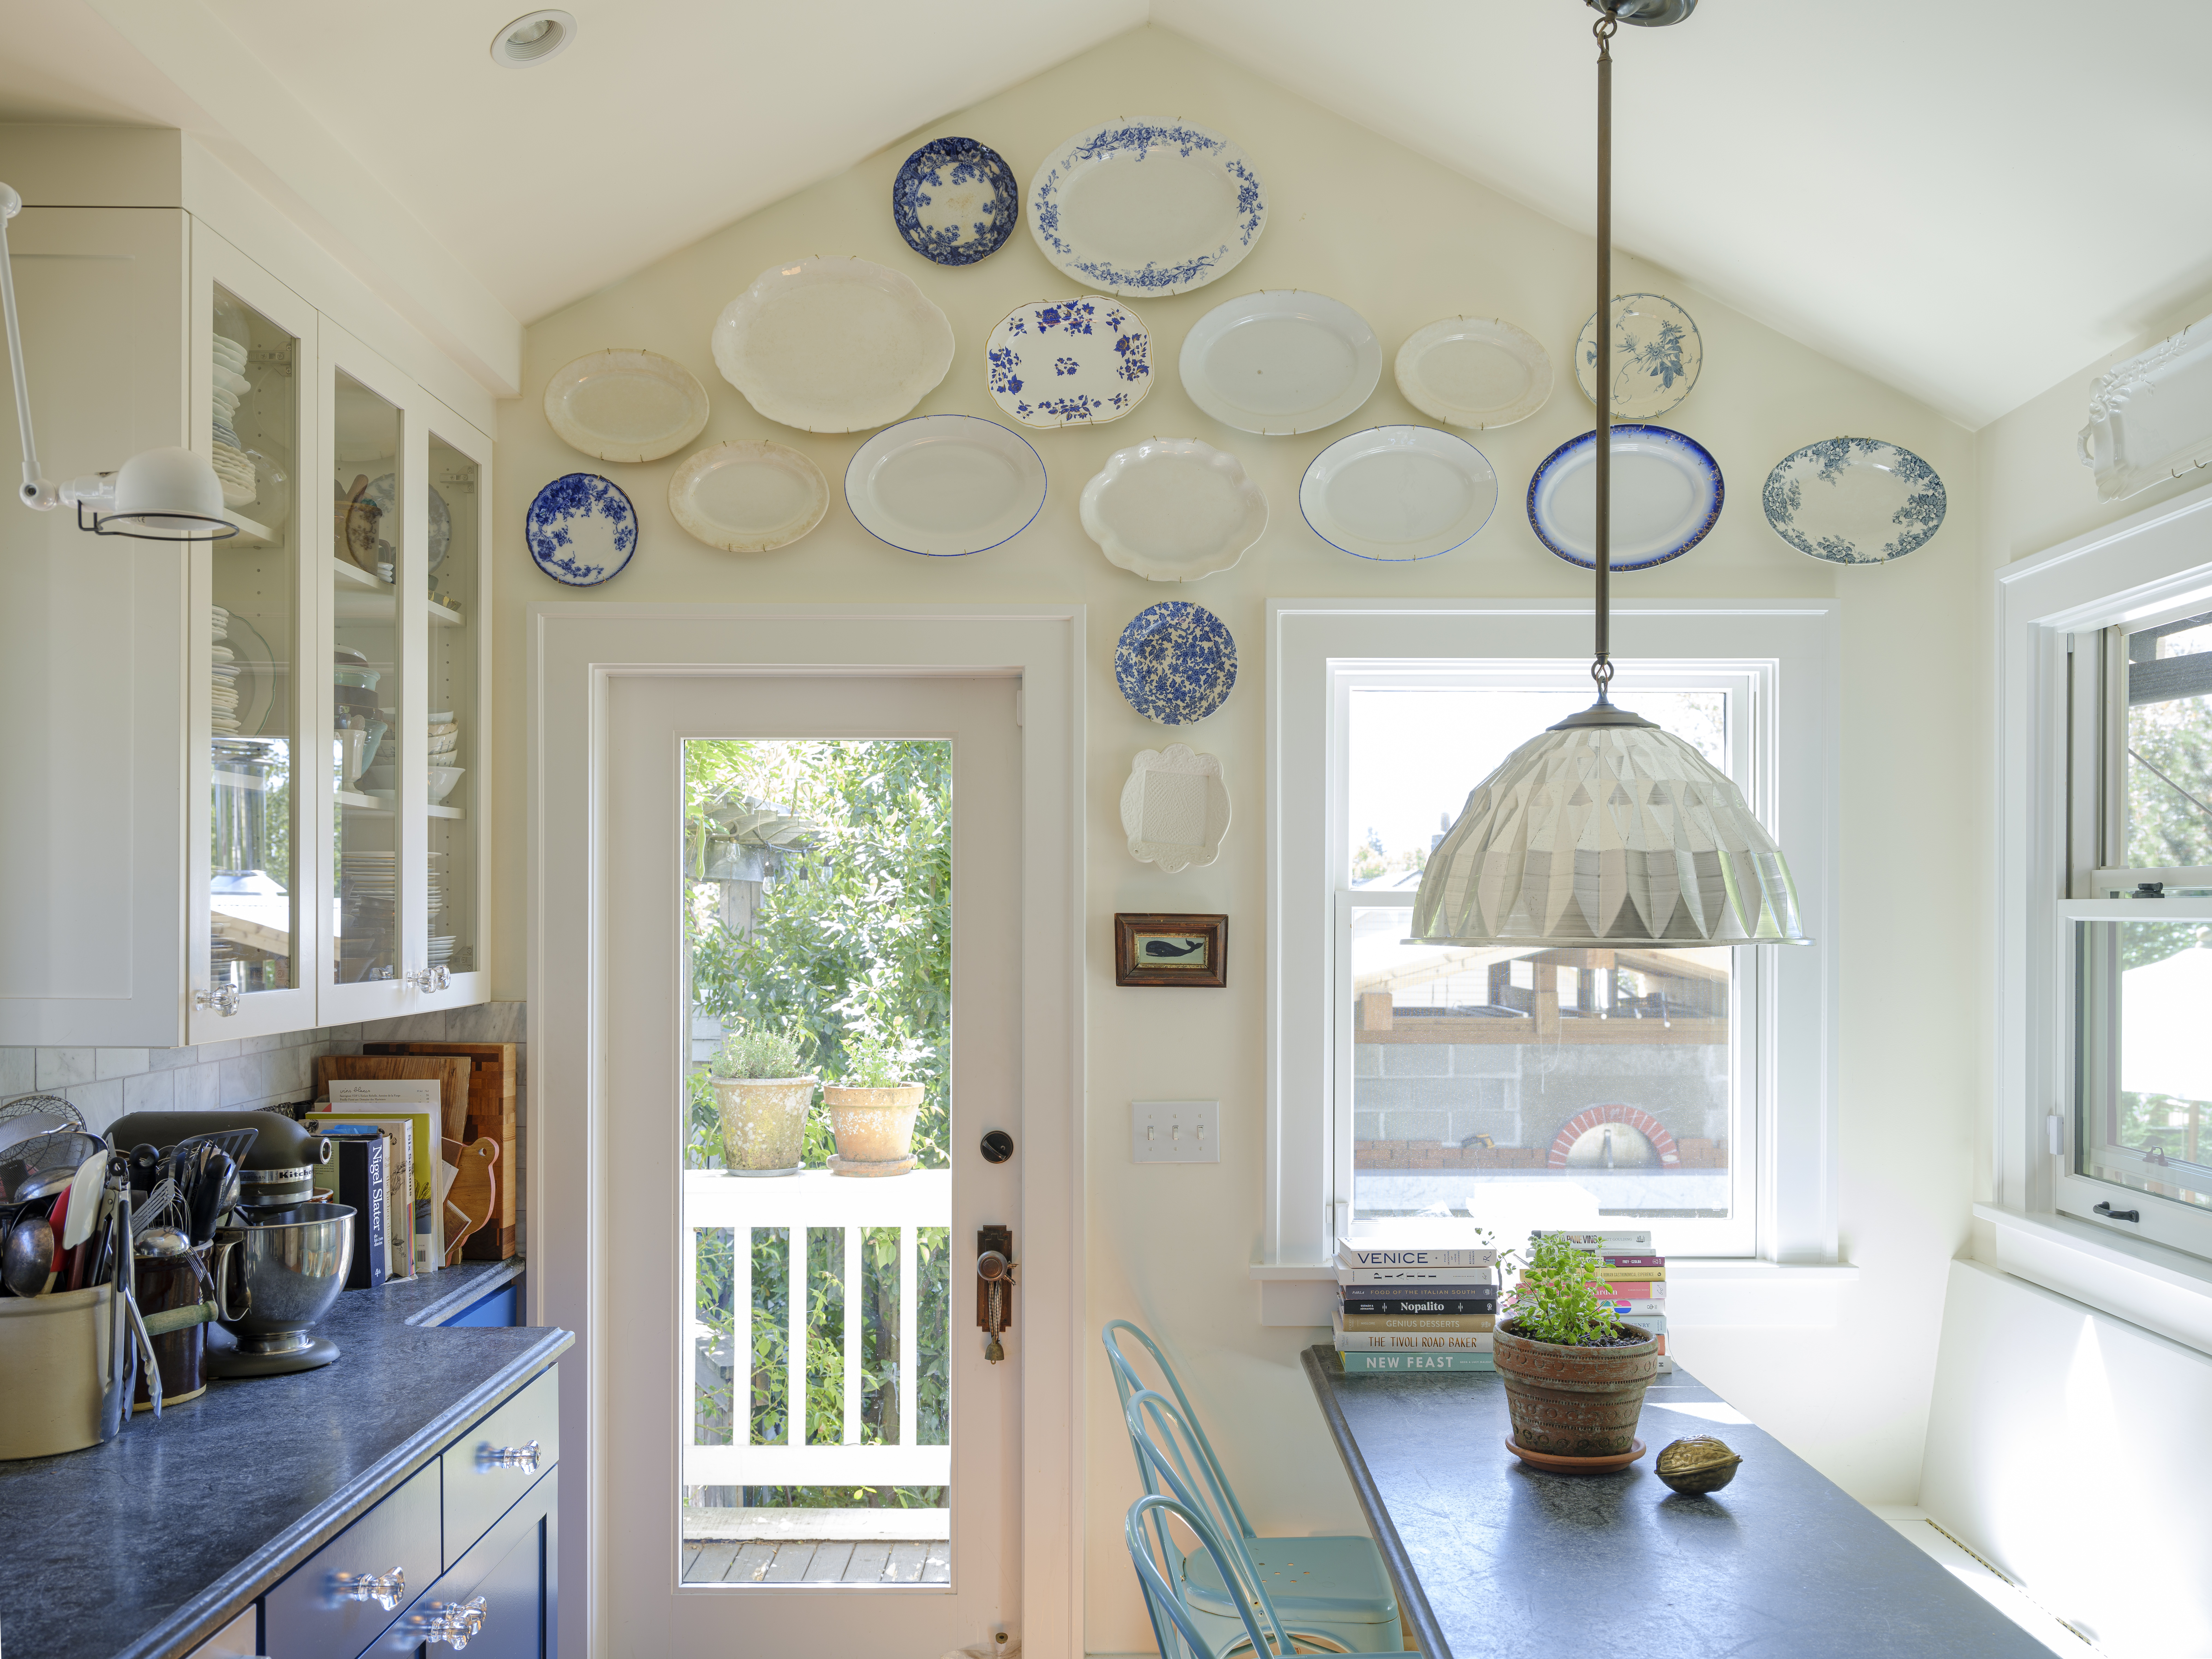 A kitchen and dining area. There is a table, chairs, blue cabinetry, cupboards with glass doors, and a hanging light fixture. On the wall hanging above a door are multiple assorted plates.